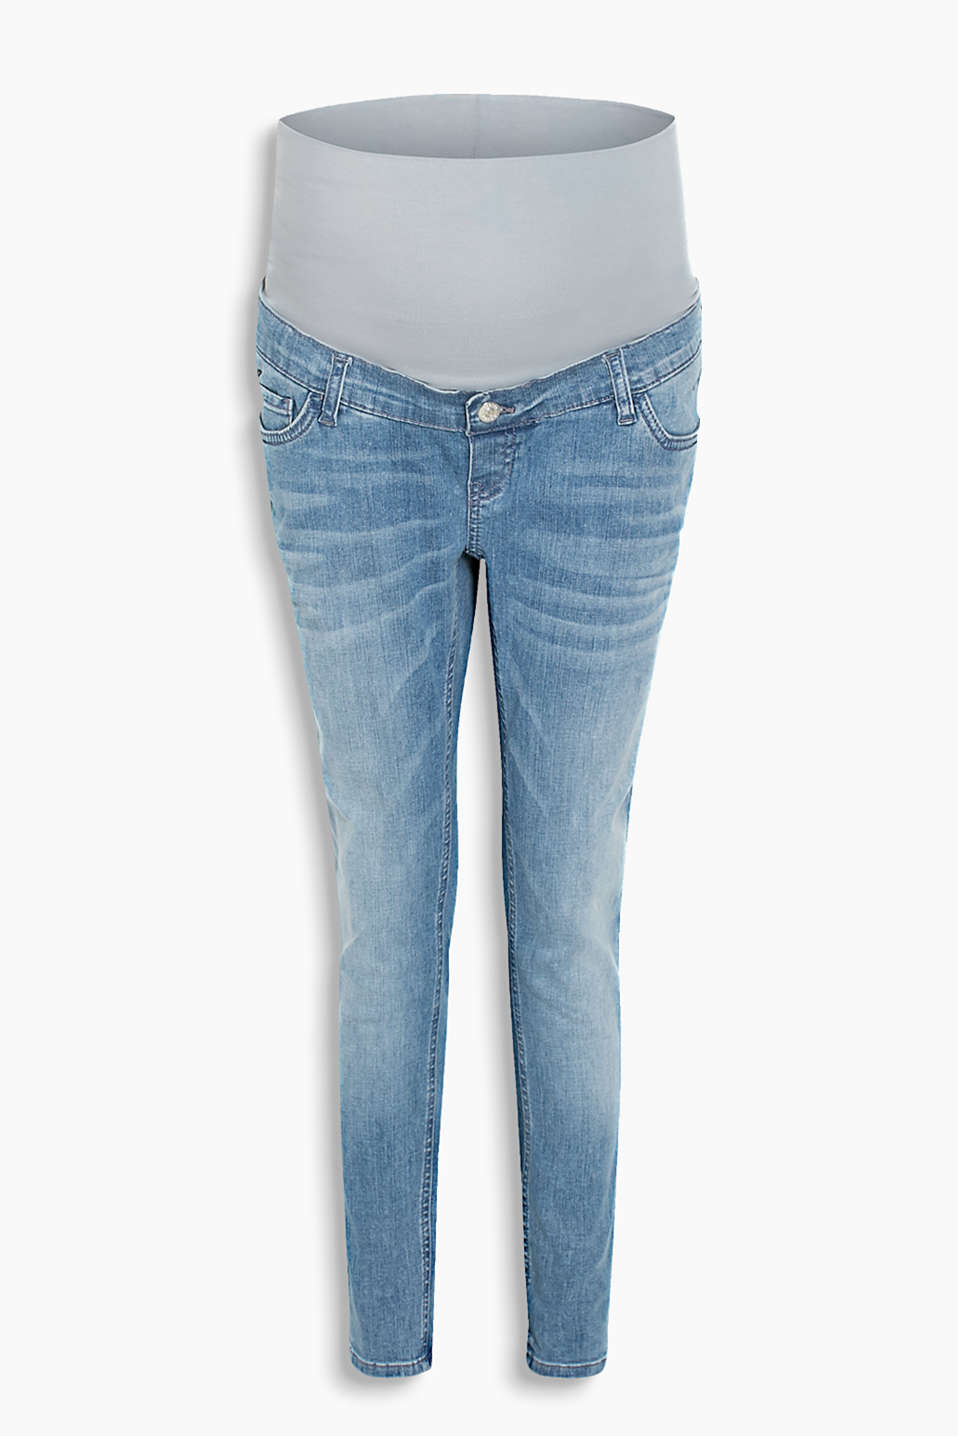 Trendy 7/8 jeans with a cool wash, added stretch for comfort and an adjustable over-bump waistband